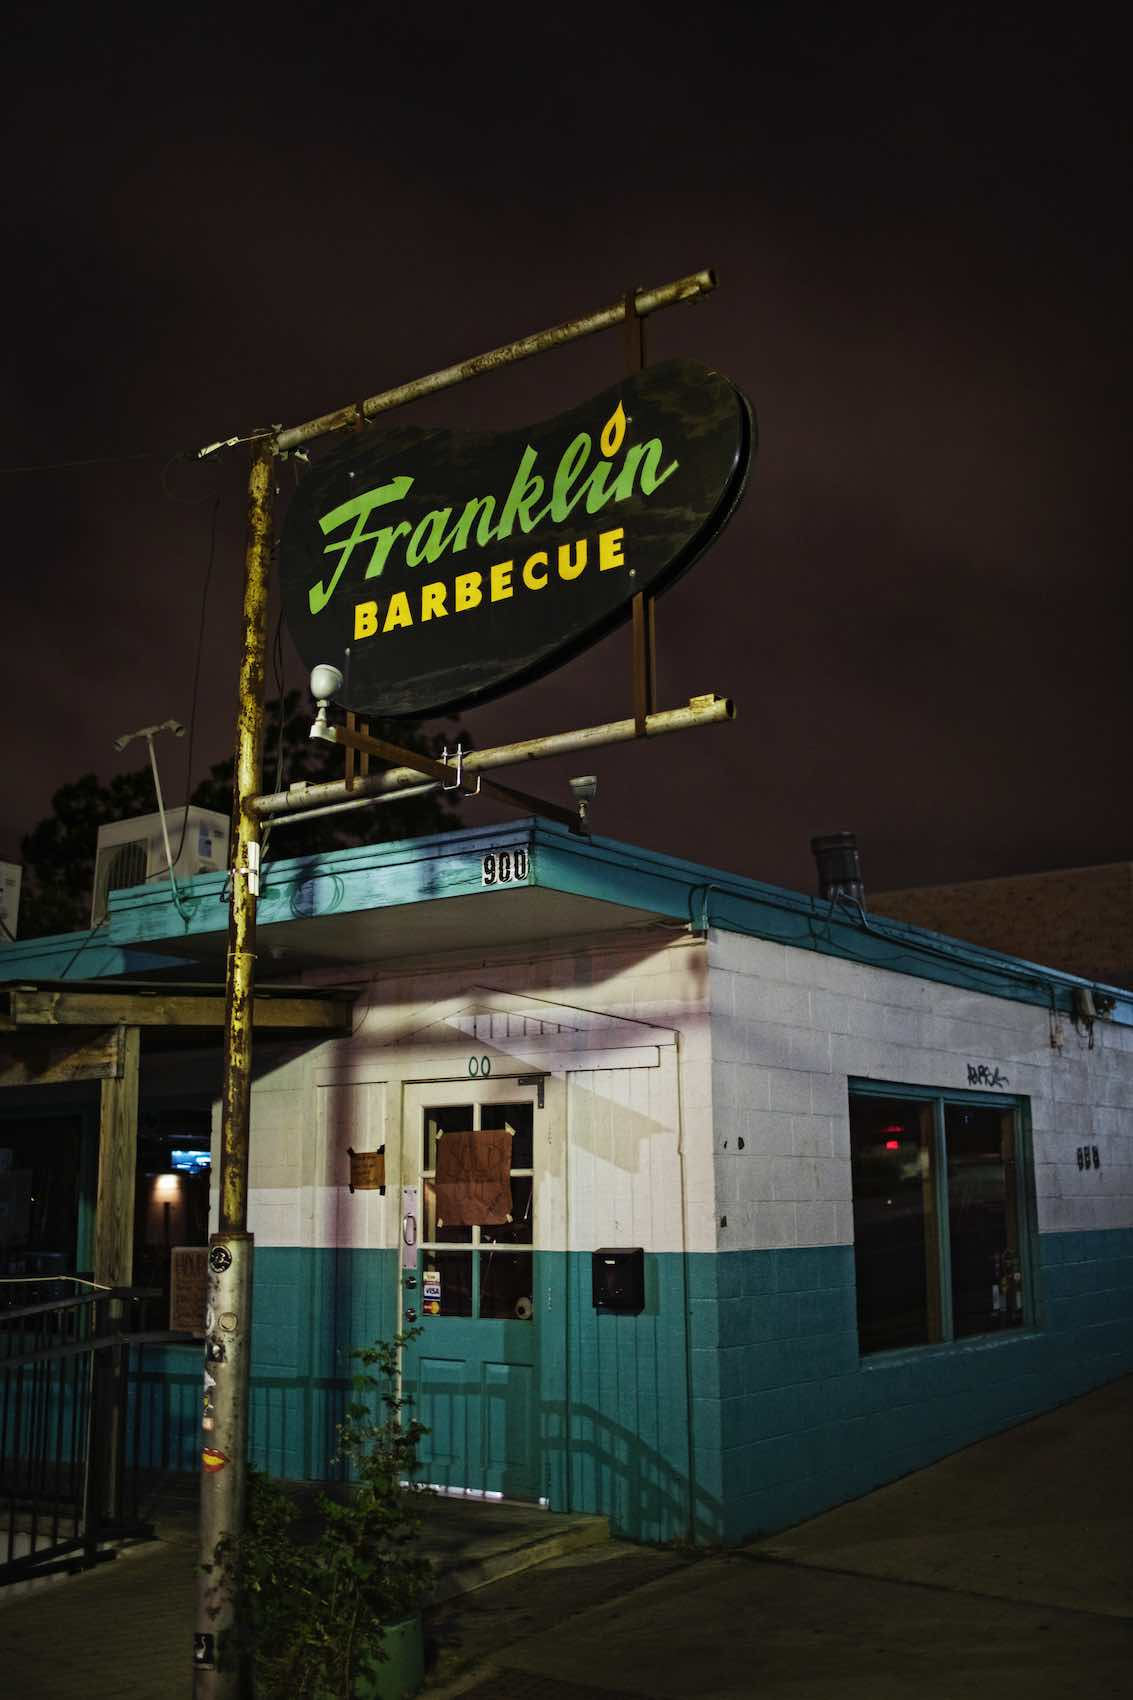 Jody Horton Photography - Franklin Barbecue storefront in Austin, TX.